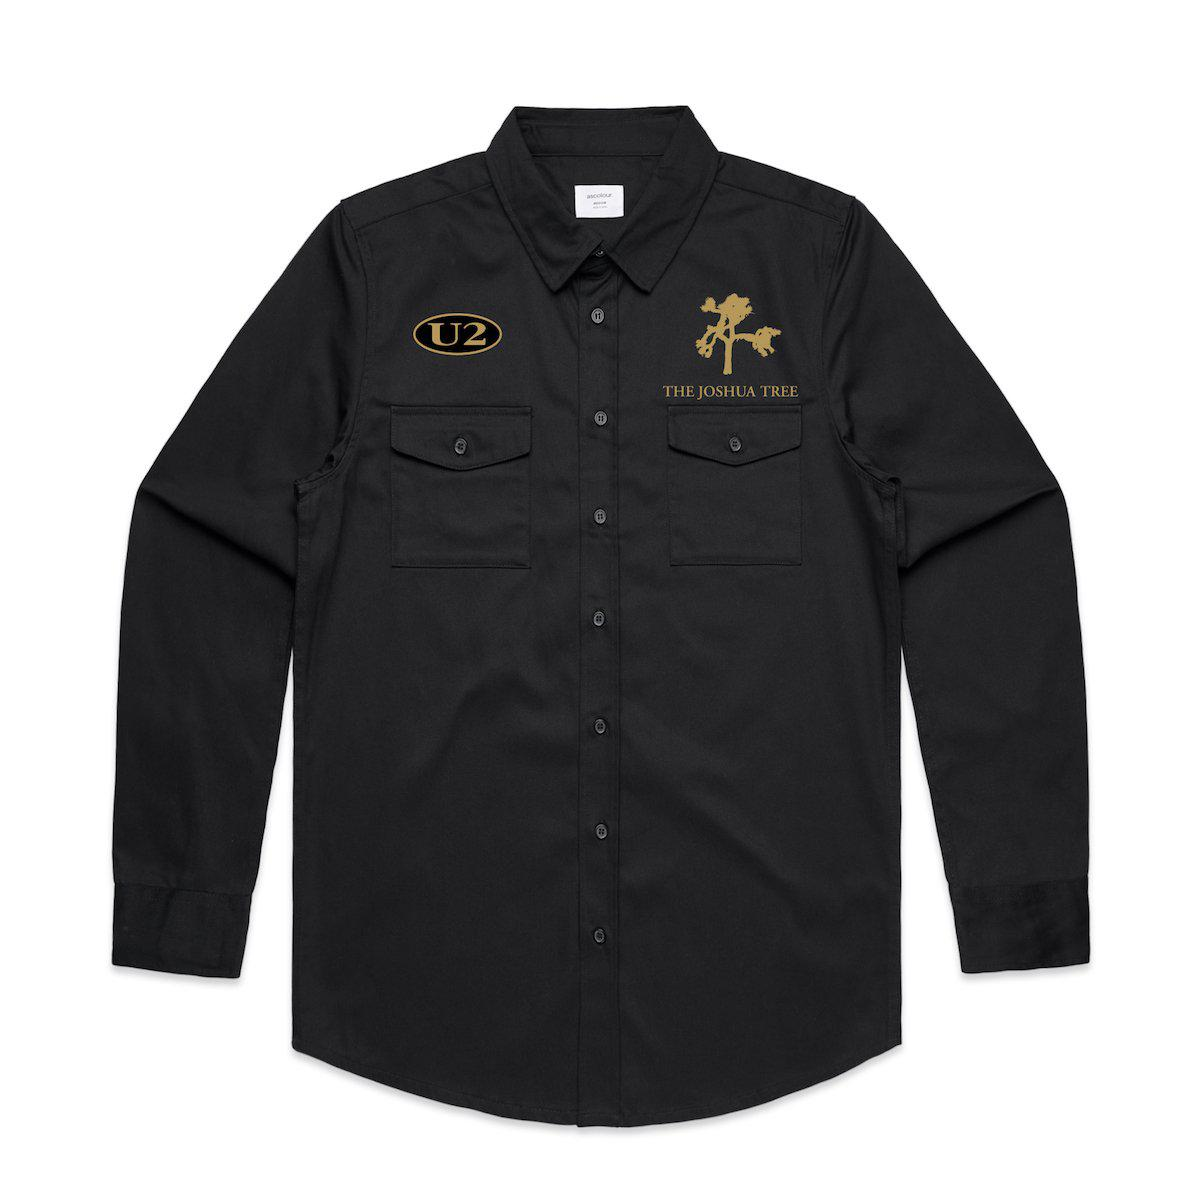 The Joshua Tree Military Style Shirt